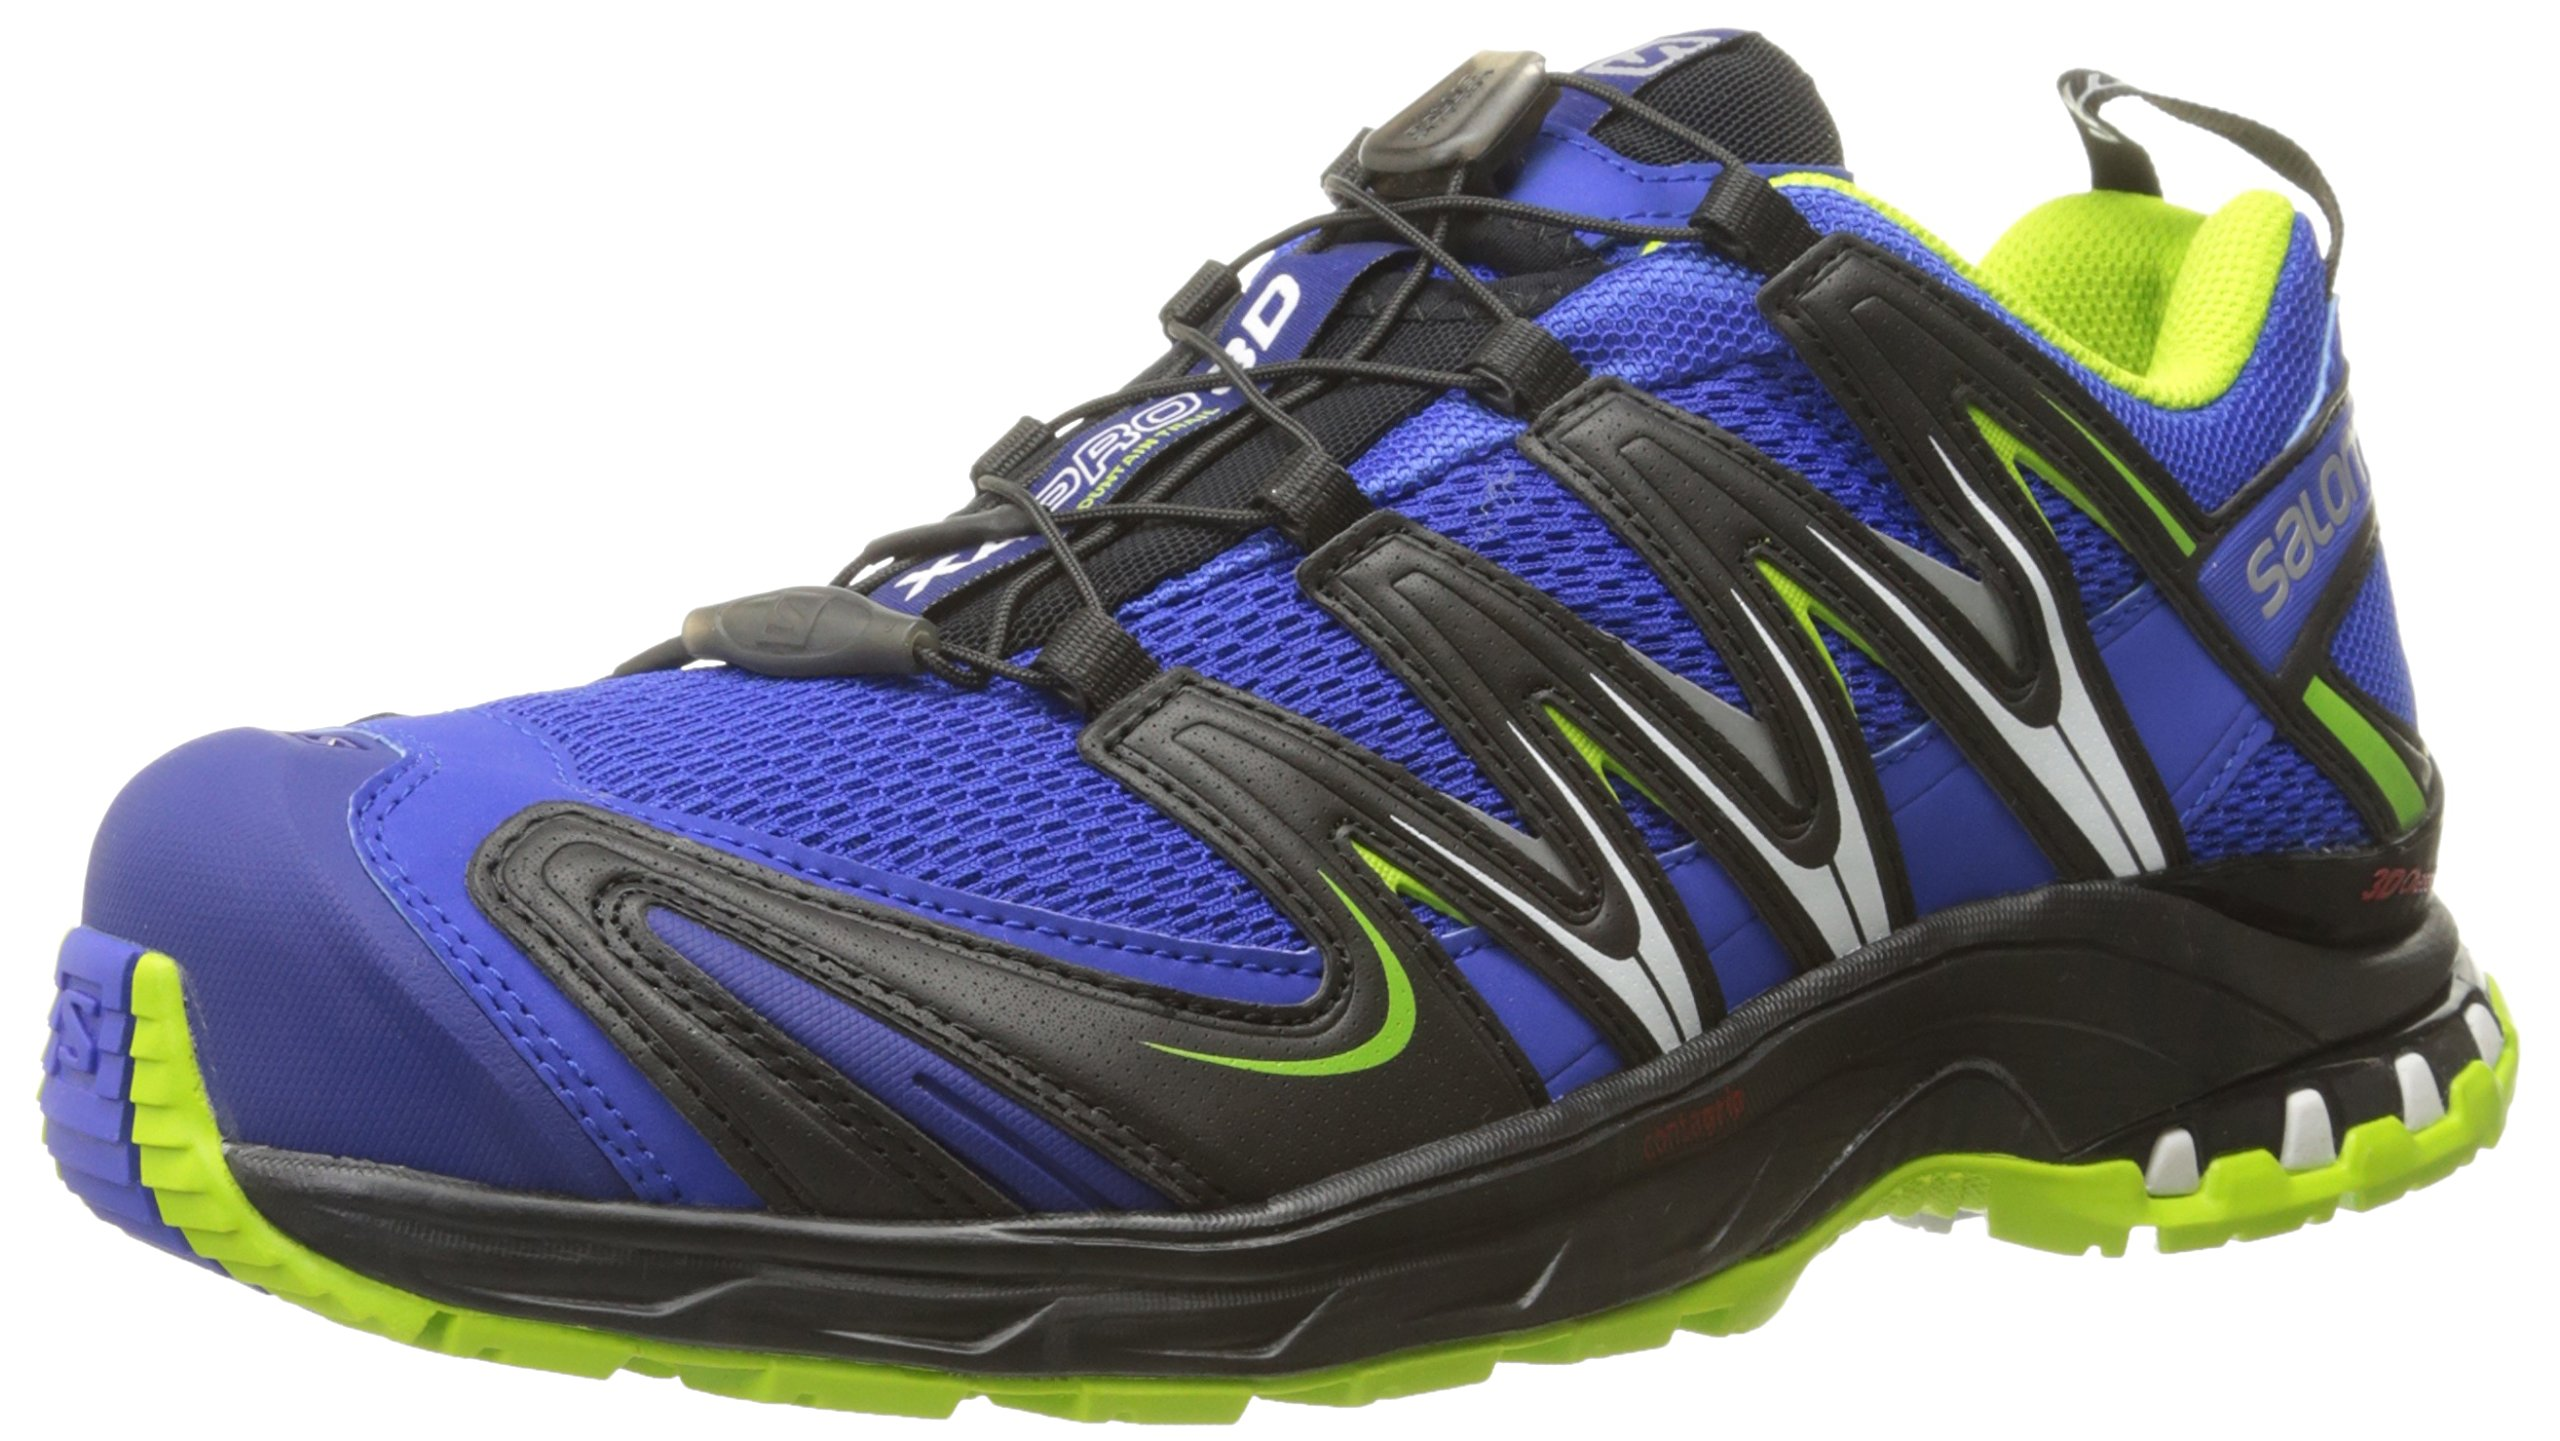 SALOMON Men's XA PRO 3D, Cobalt/Process Blue/Granny Green, 10 D US by SALOMON